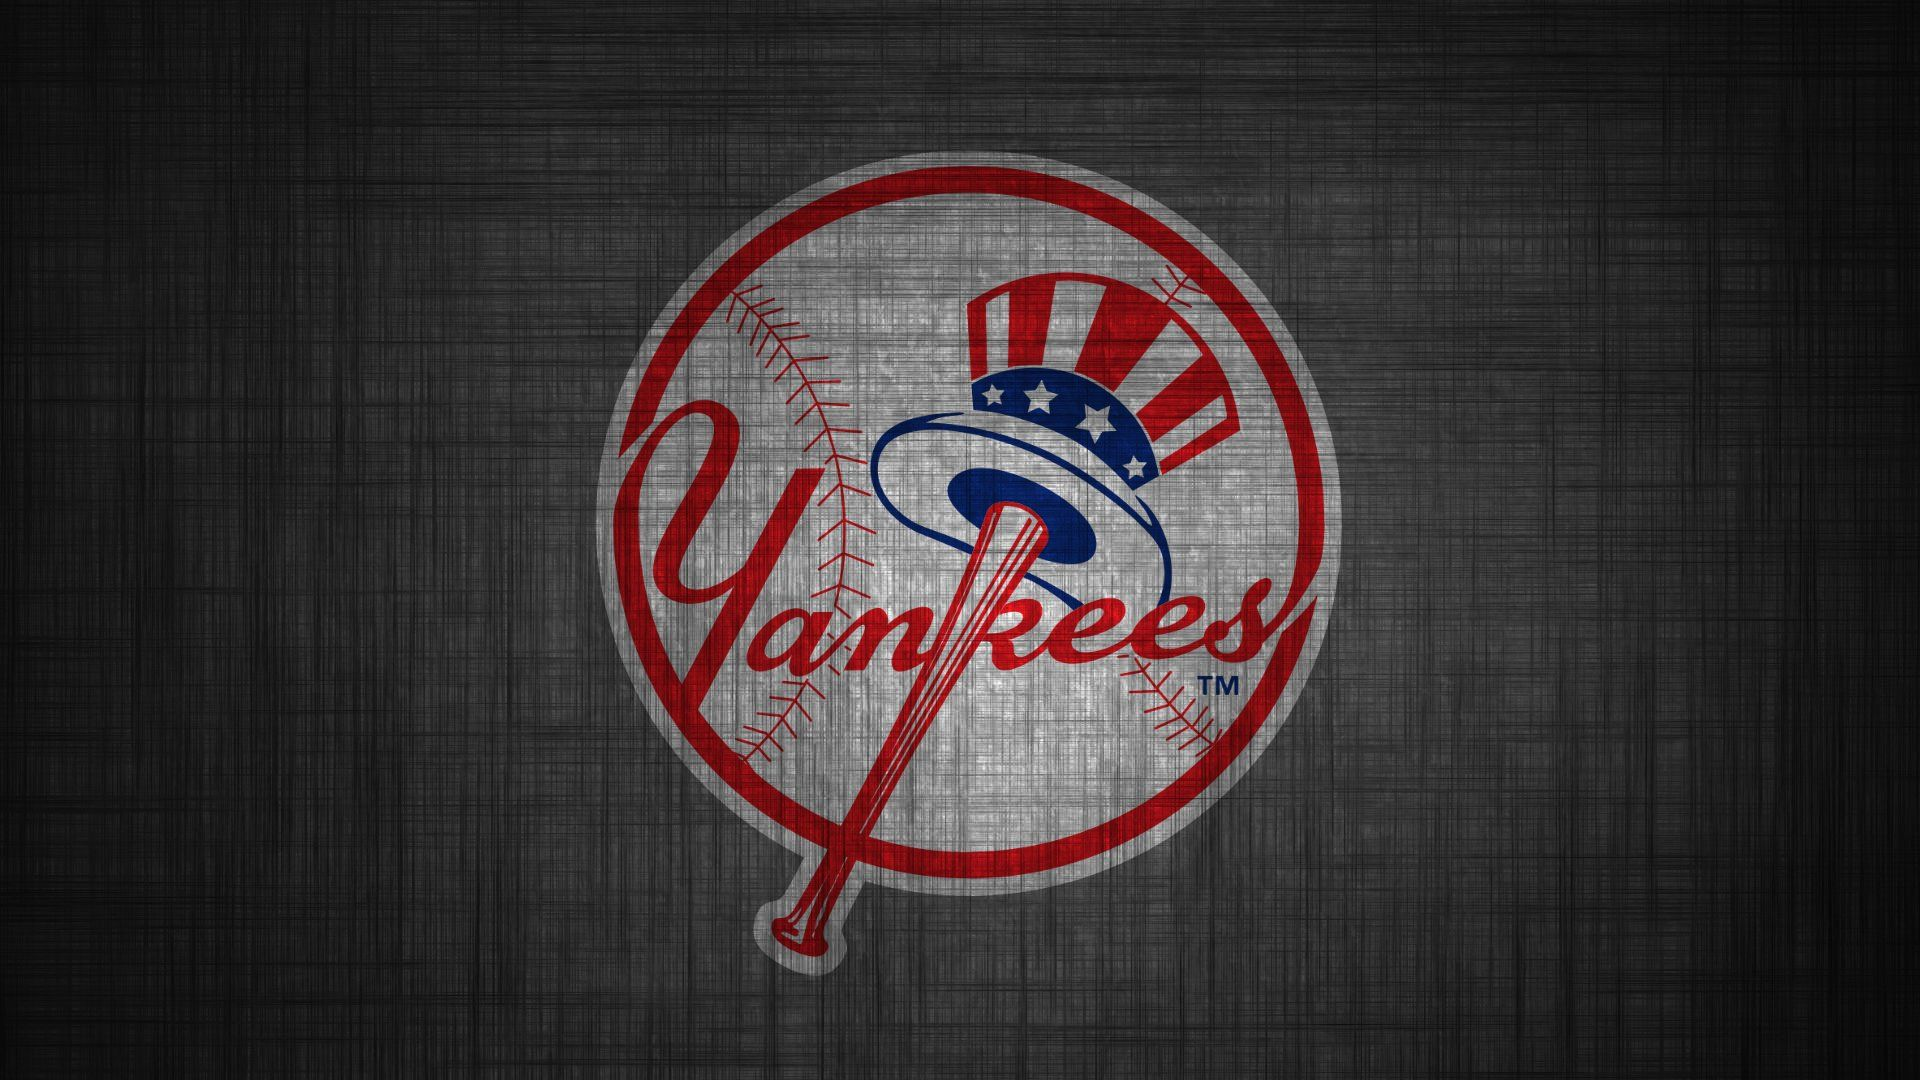 New York Yankees Wallpaper Hd Best Wallpaper Hd New York Yankees Logo New York Yankees Logo Wallpaper Hd